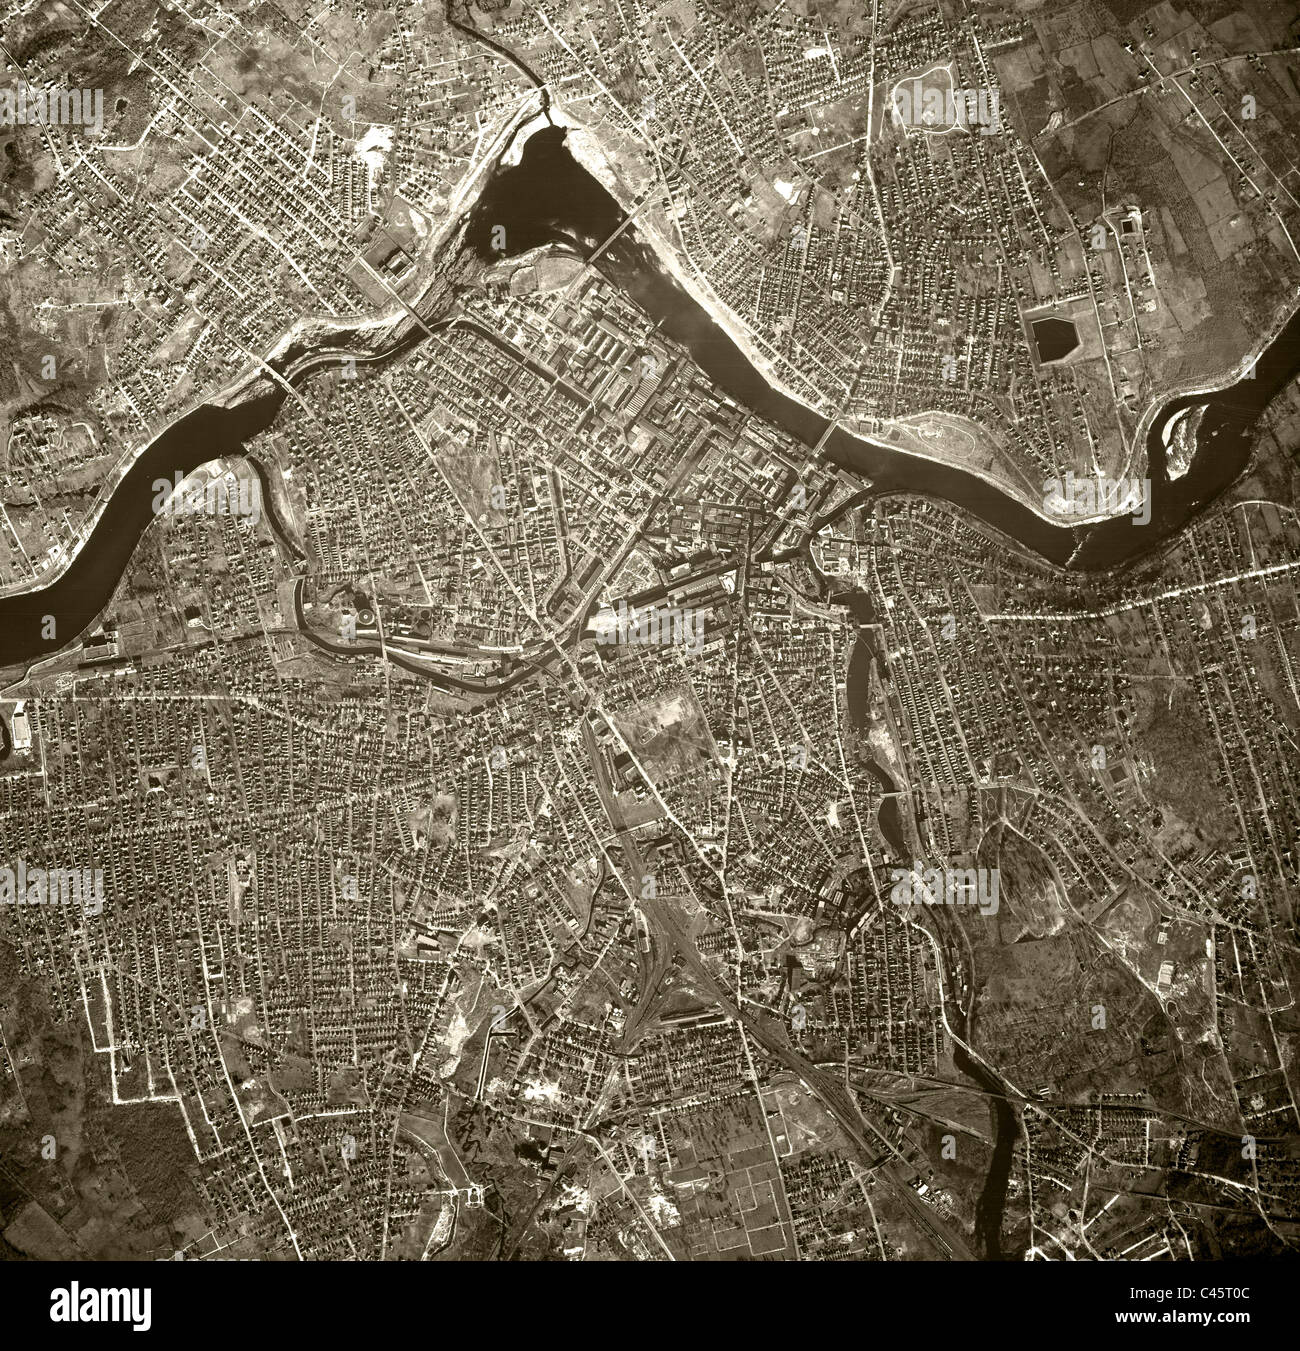 historical aerial map view Lowell Massachusetts 1938 - Stock Image